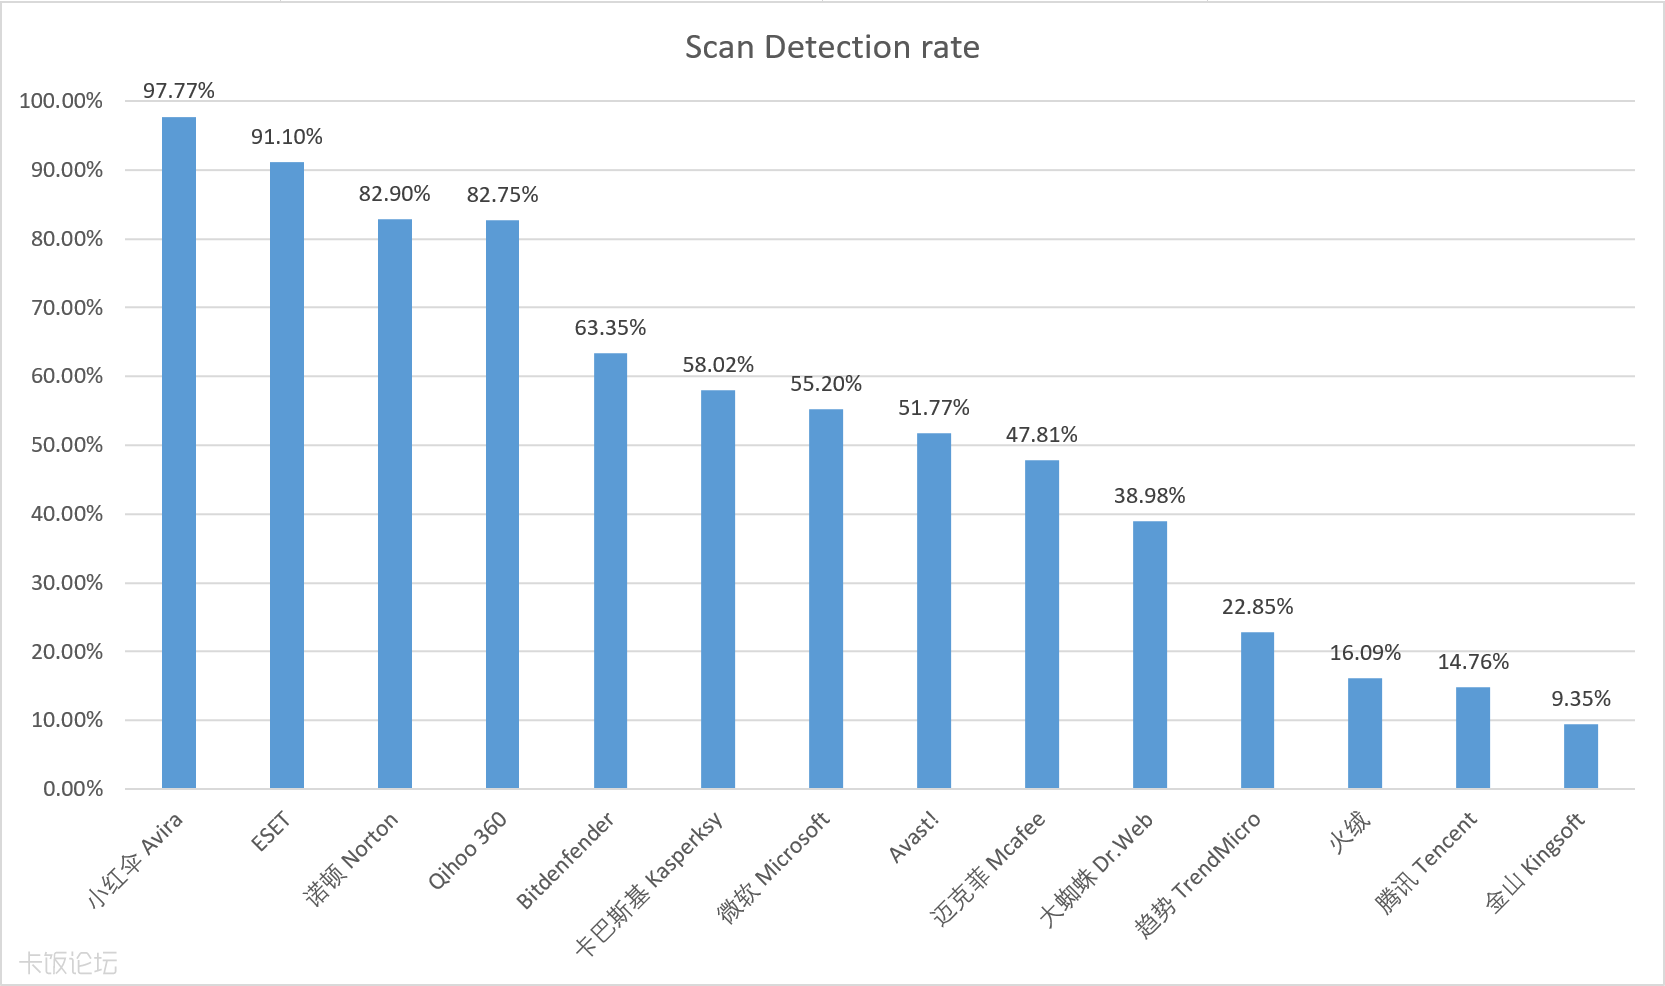 Scan_Detection_rate.png